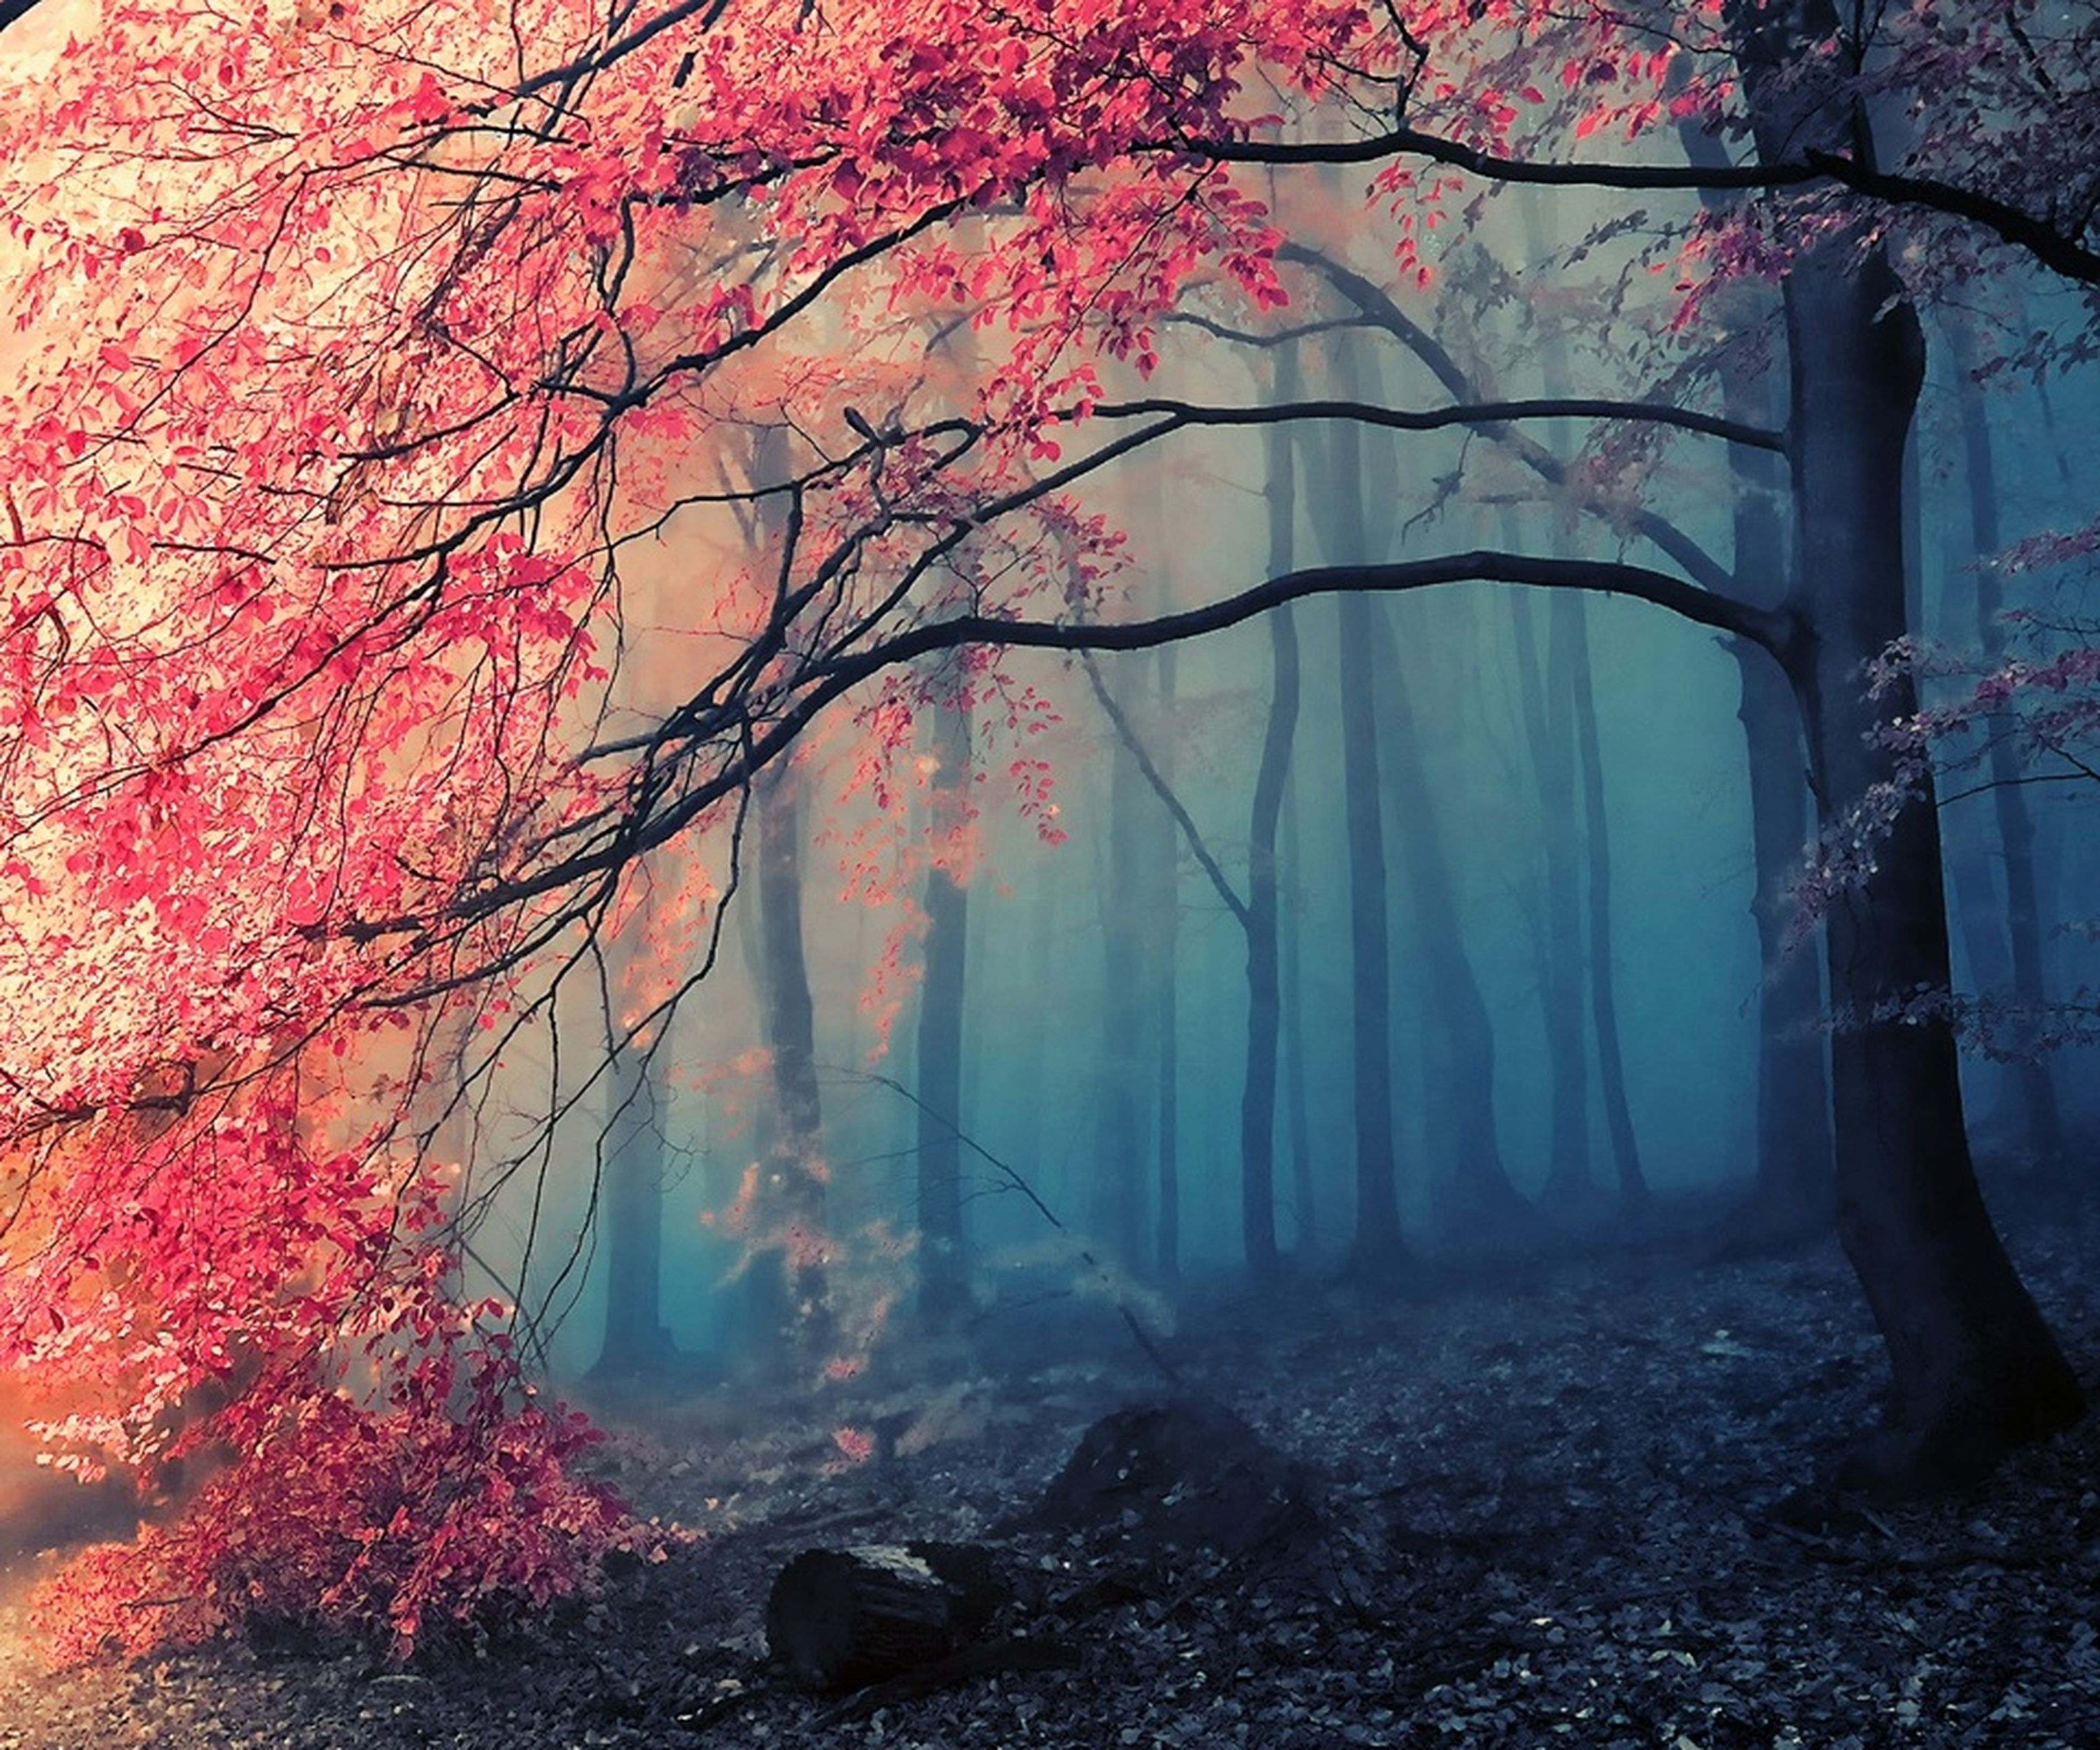 tree, branch, beauty in nature, nature, growth, tranquility, tree trunk, season, tranquil scene, scenics, flower, autumn, change, pink color, outdoors, day, sunlight, no people, park - man made space, idyllic